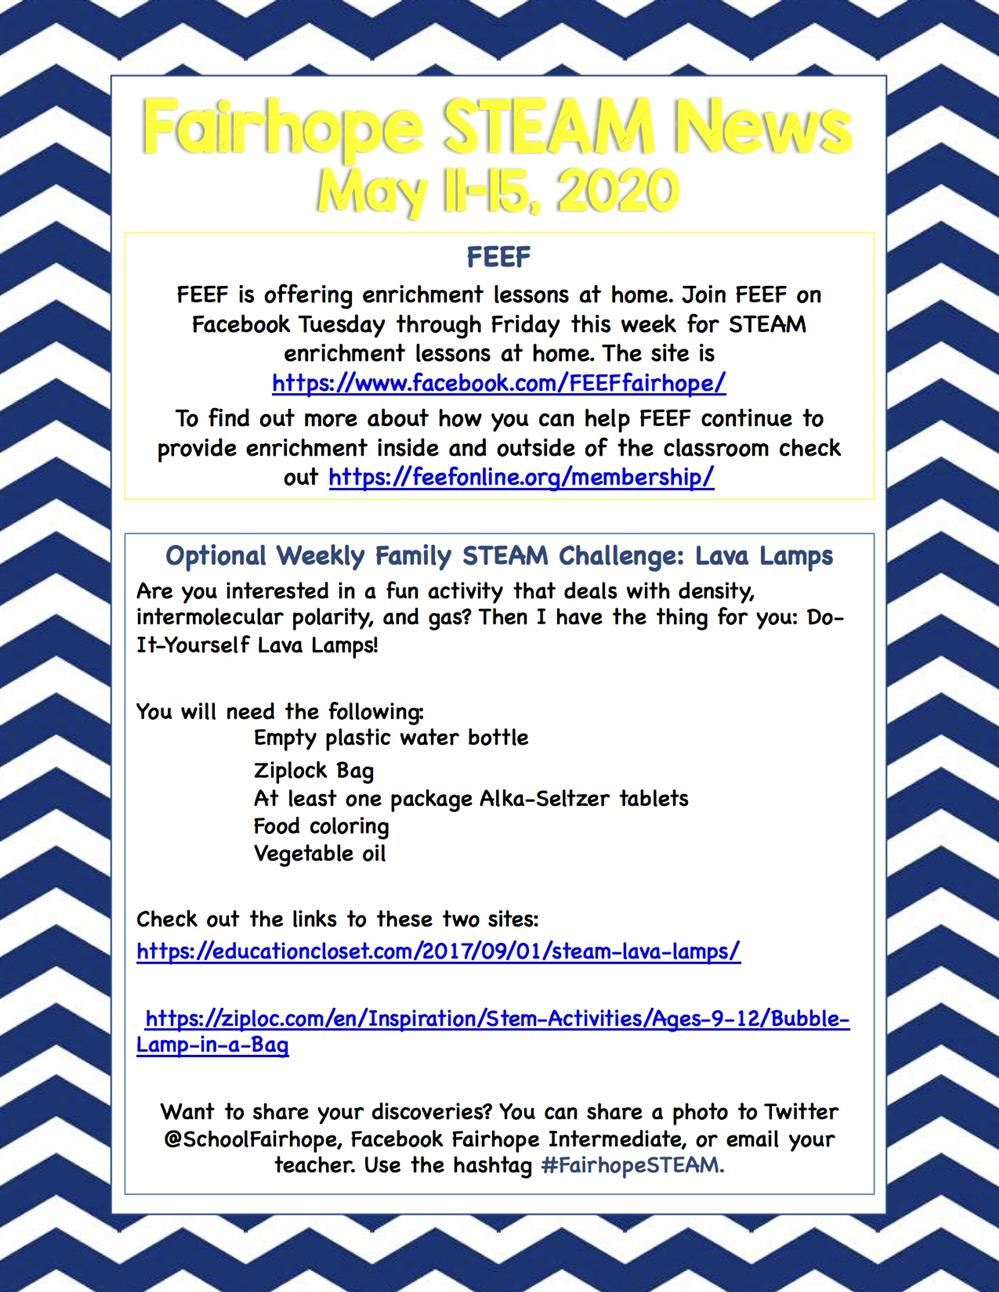 Fairhope STEAM News (May 11th - 15th)